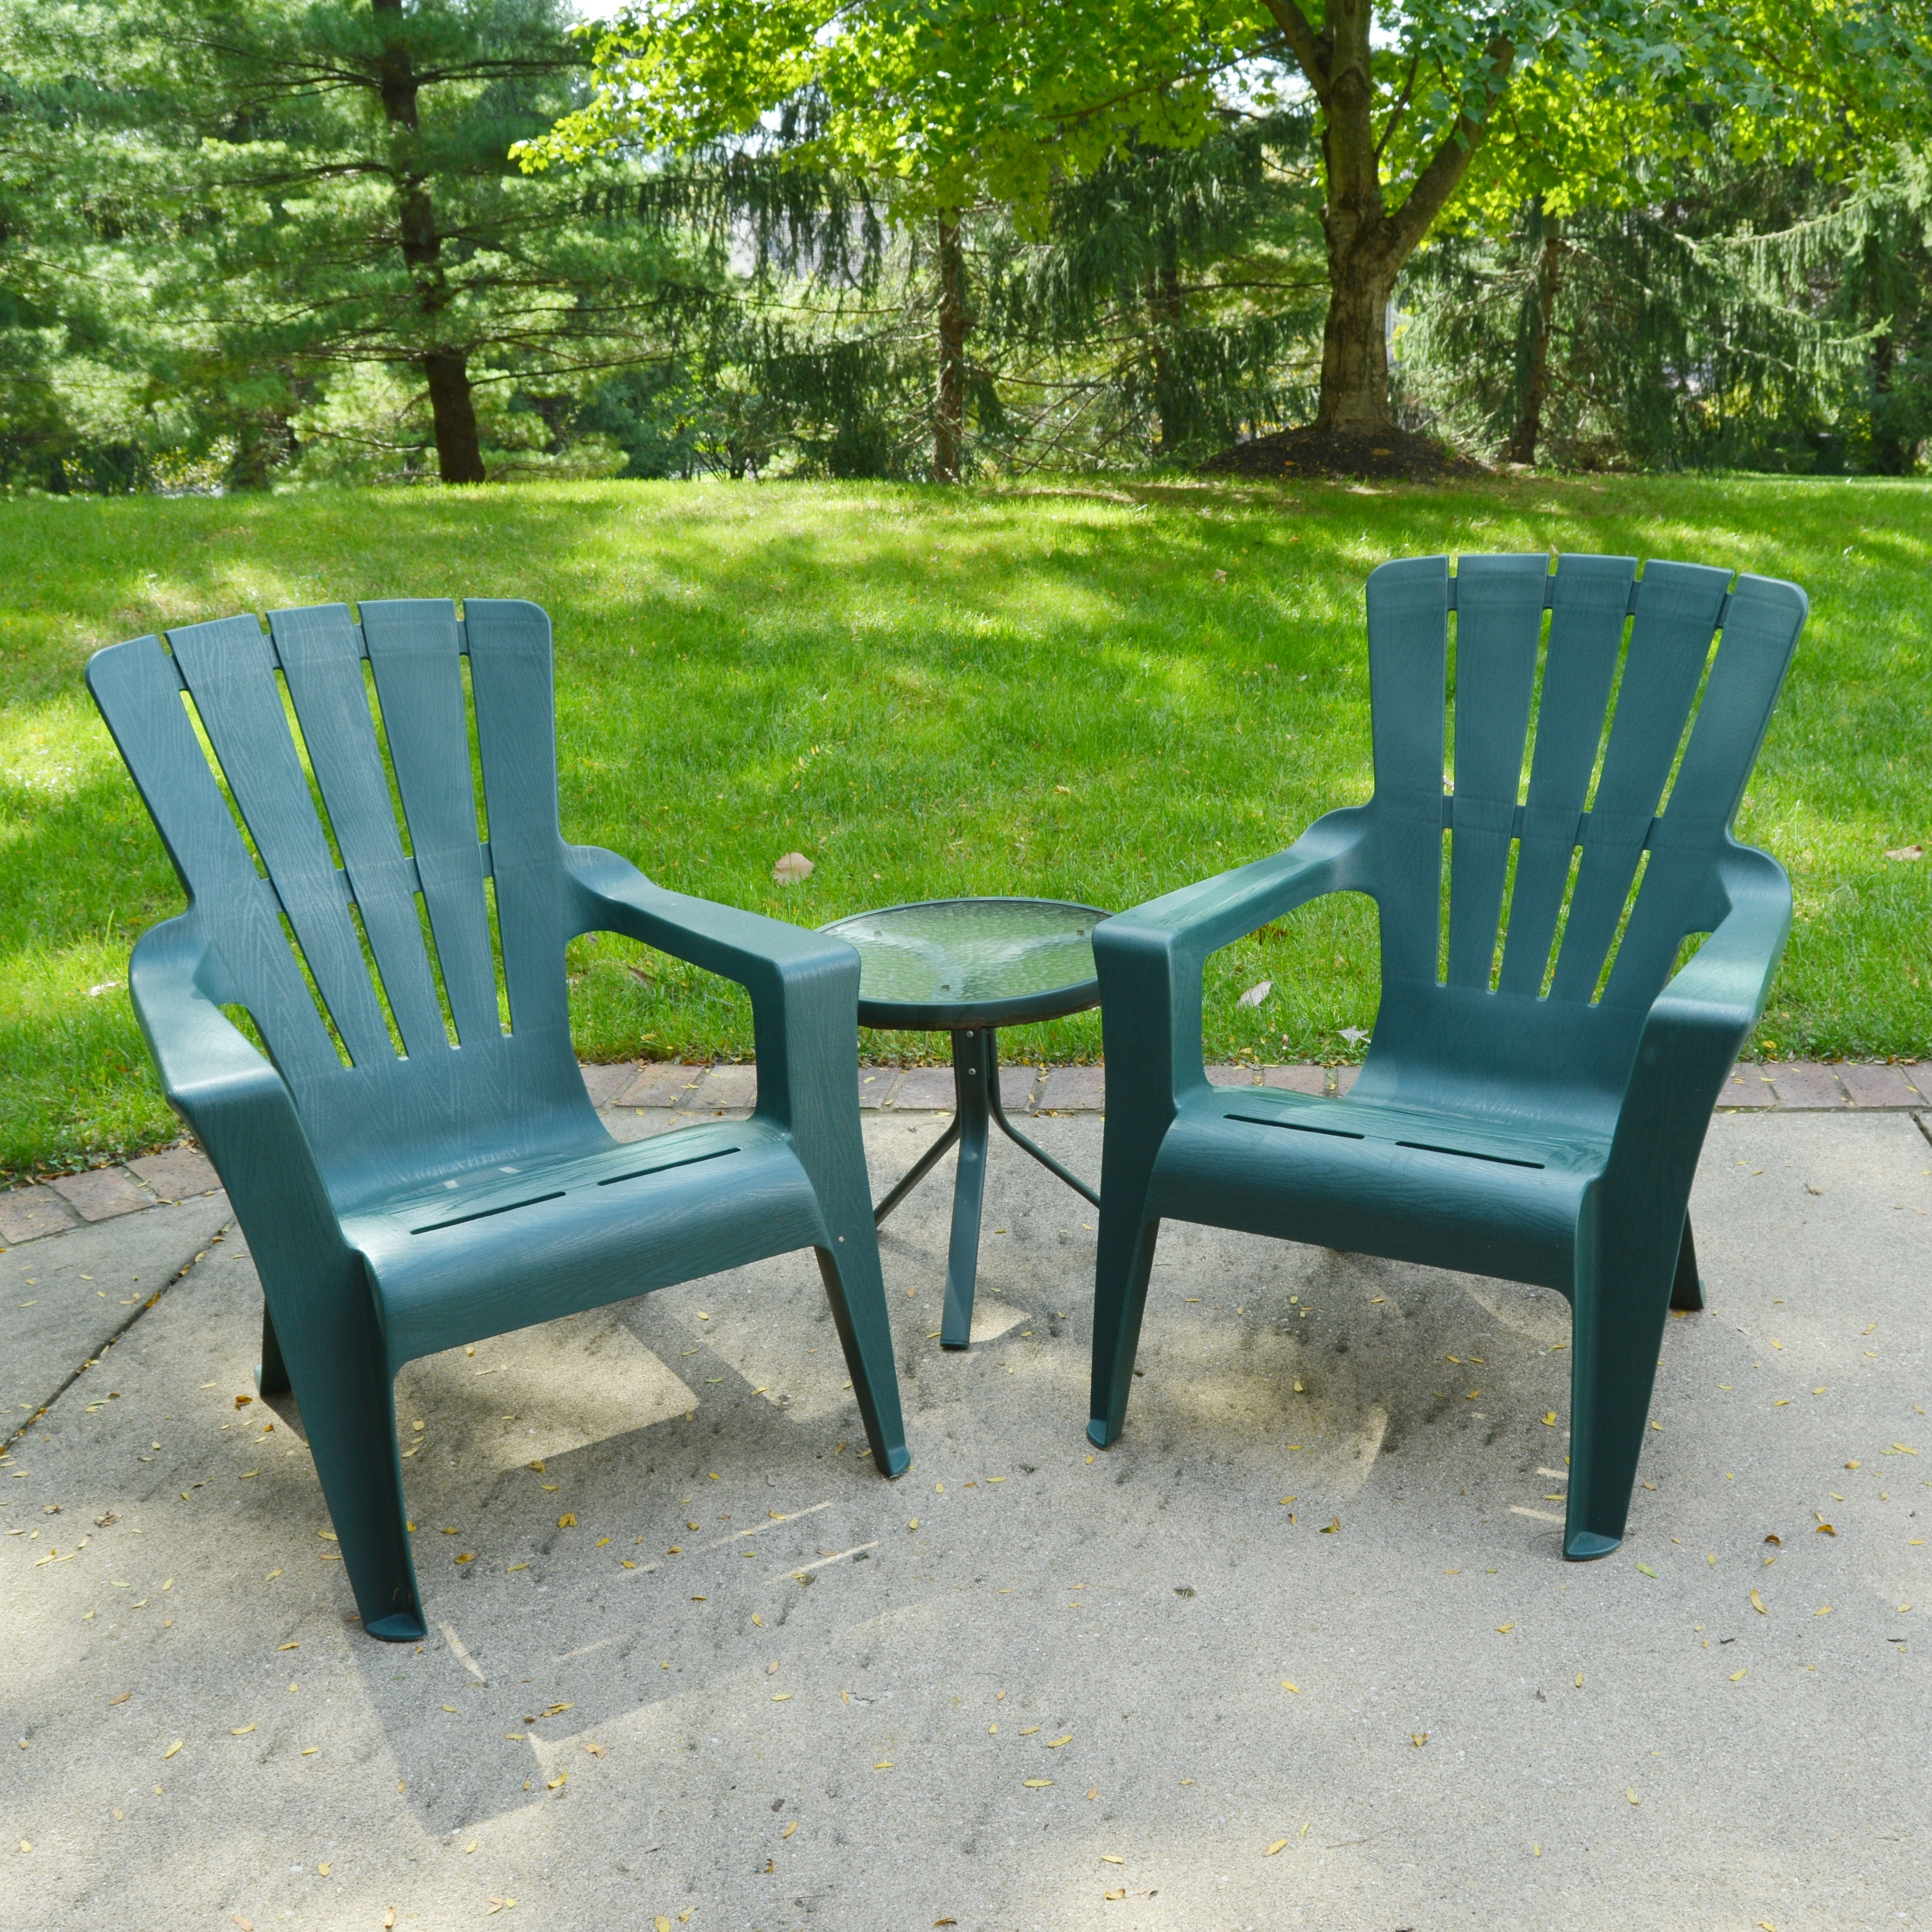 Adirondack Style Chairs and Side Table